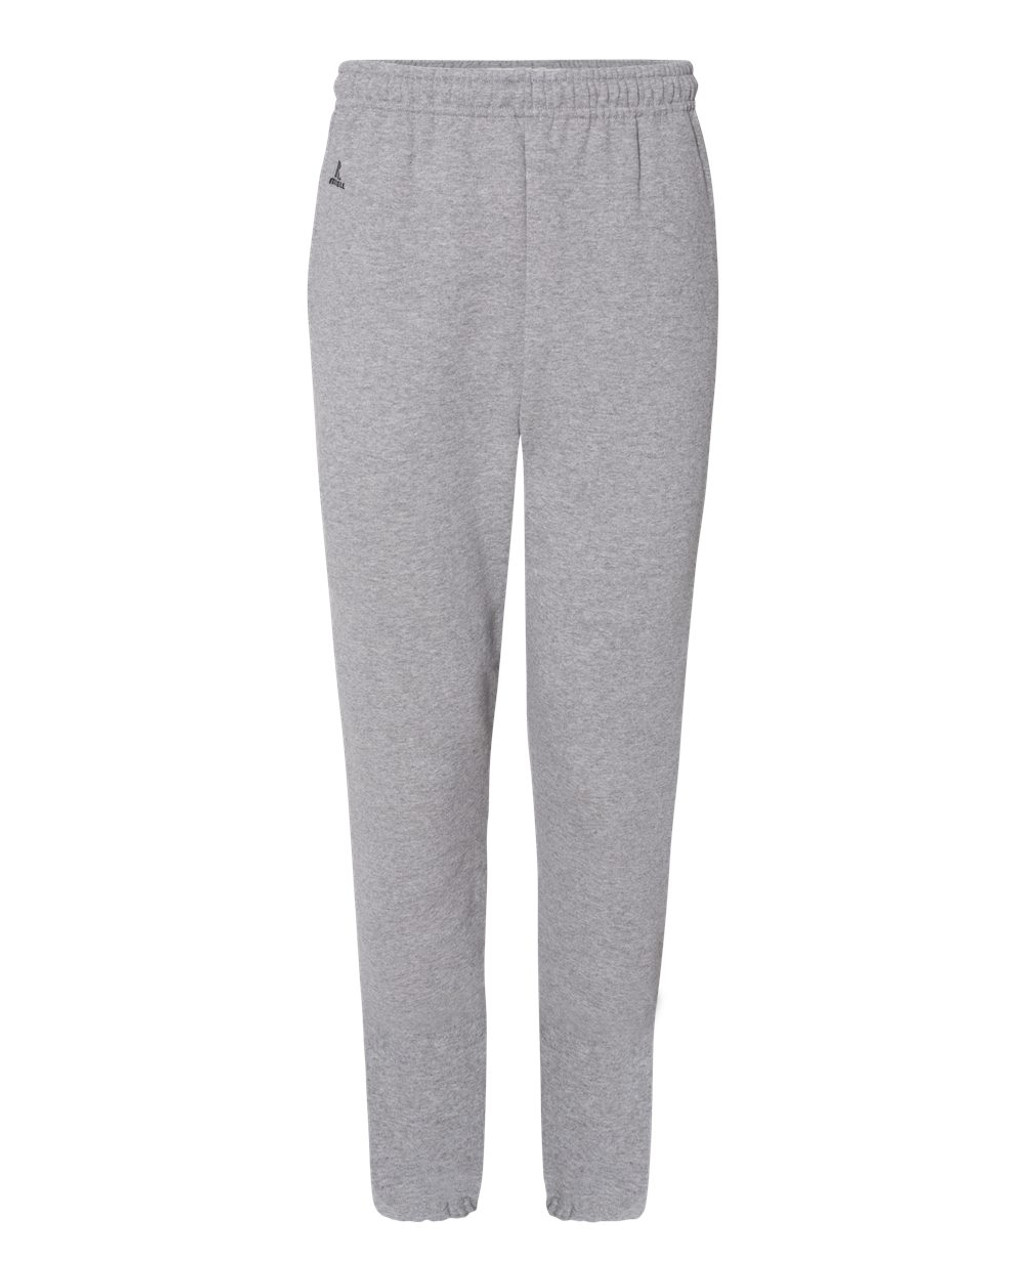 029HBM Russell Athletic - Dri Power® Closed Bottom Sweatpants with Pockets   T-shirt.ca